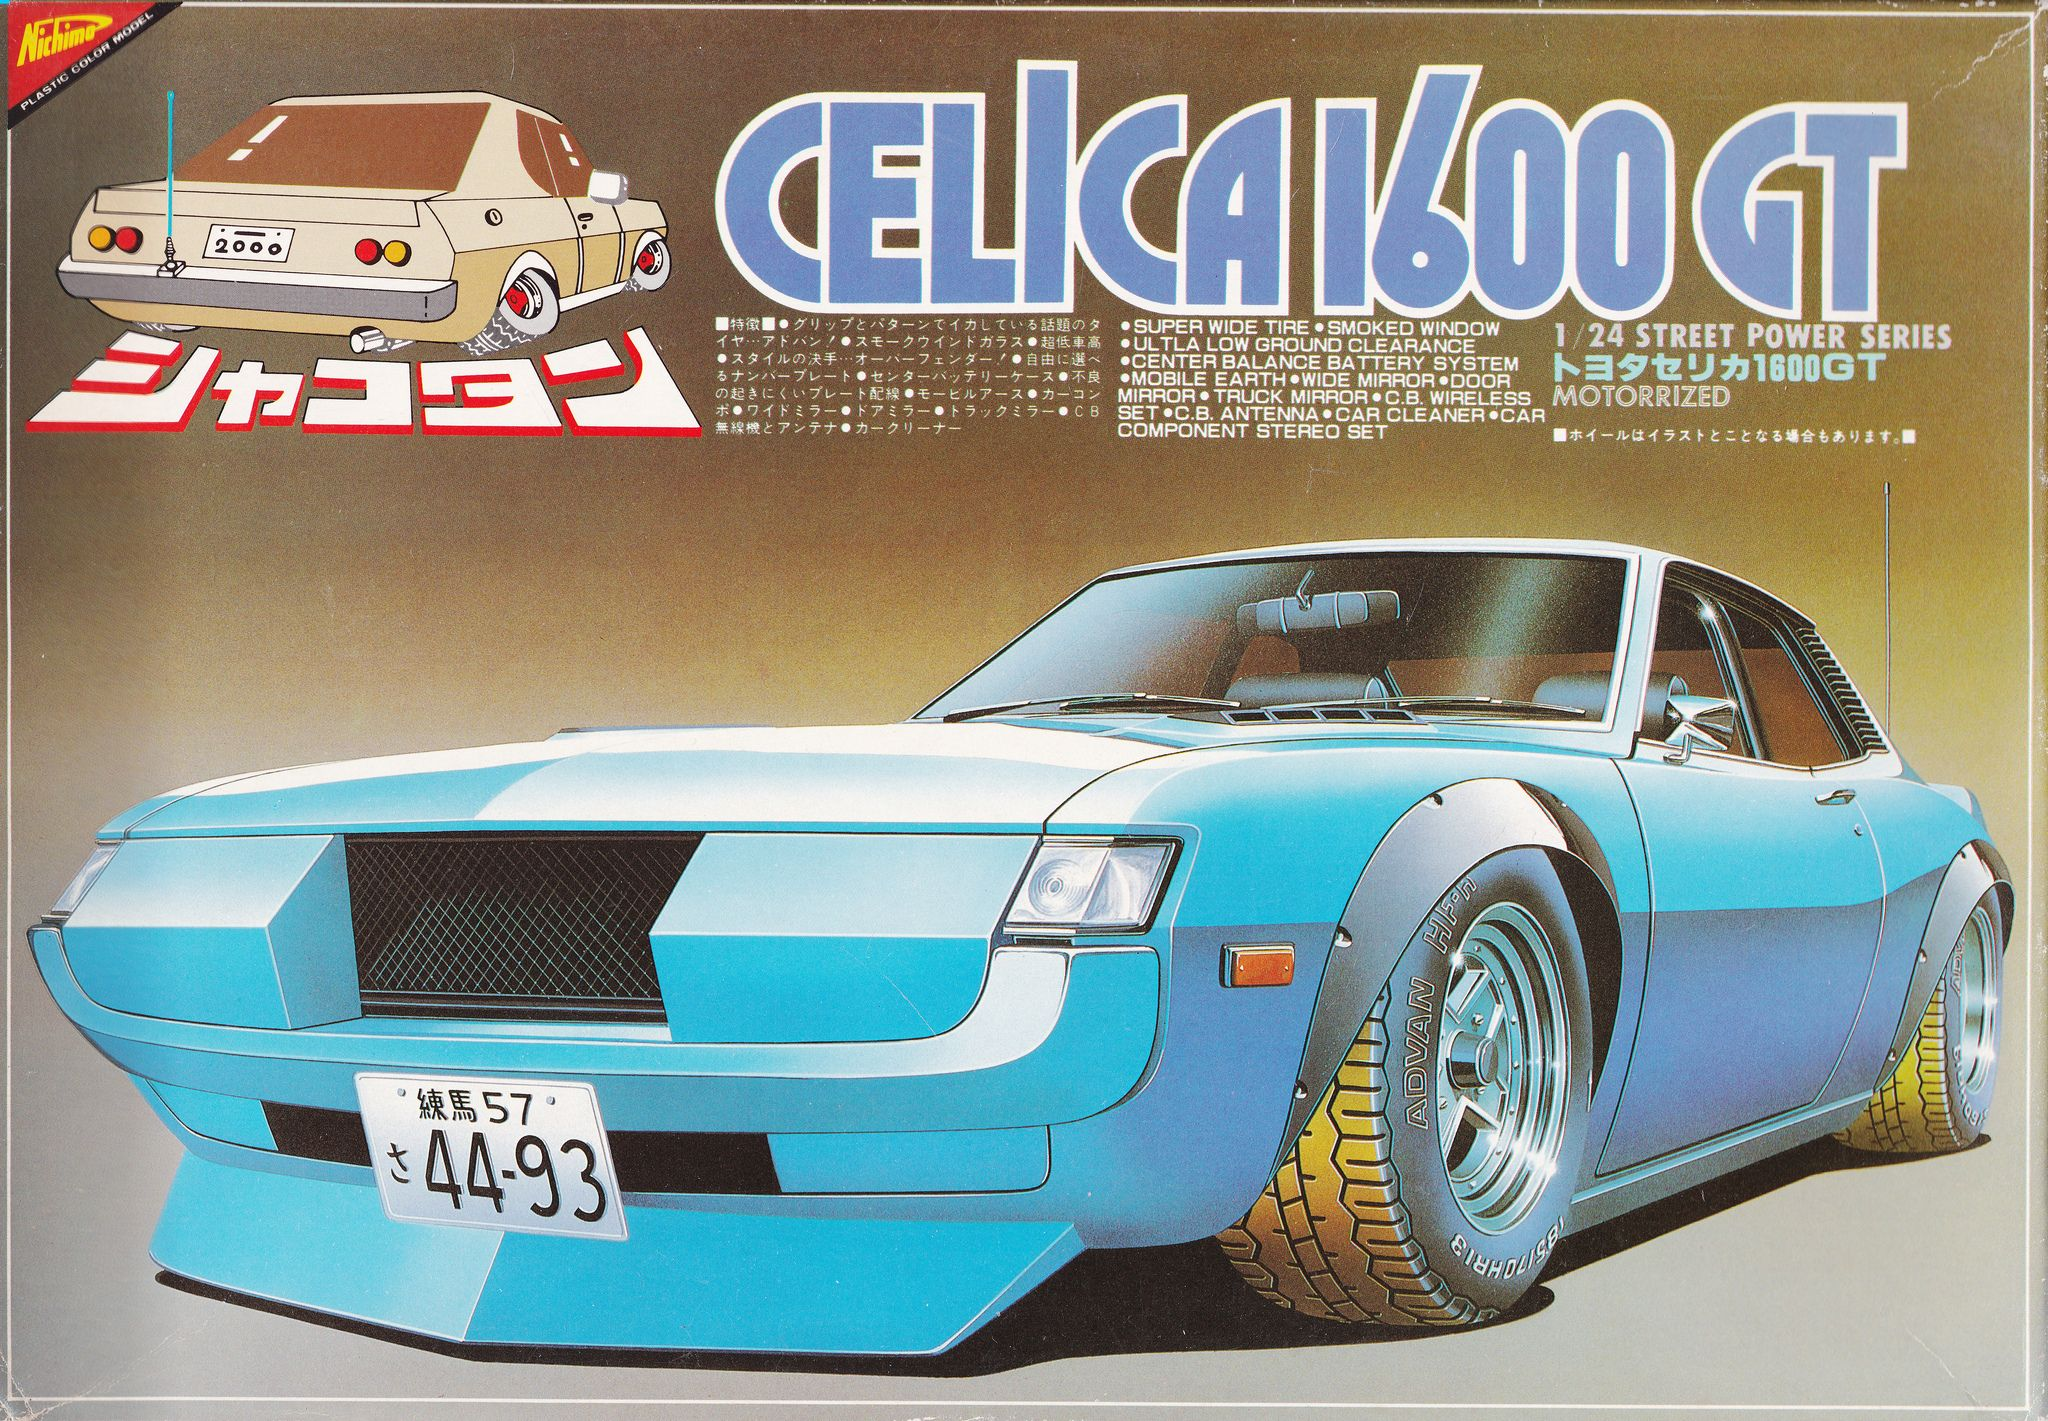 All Sizes | TA22 Toyota Celica 1600 GT | Flickr   Photo Sharing!